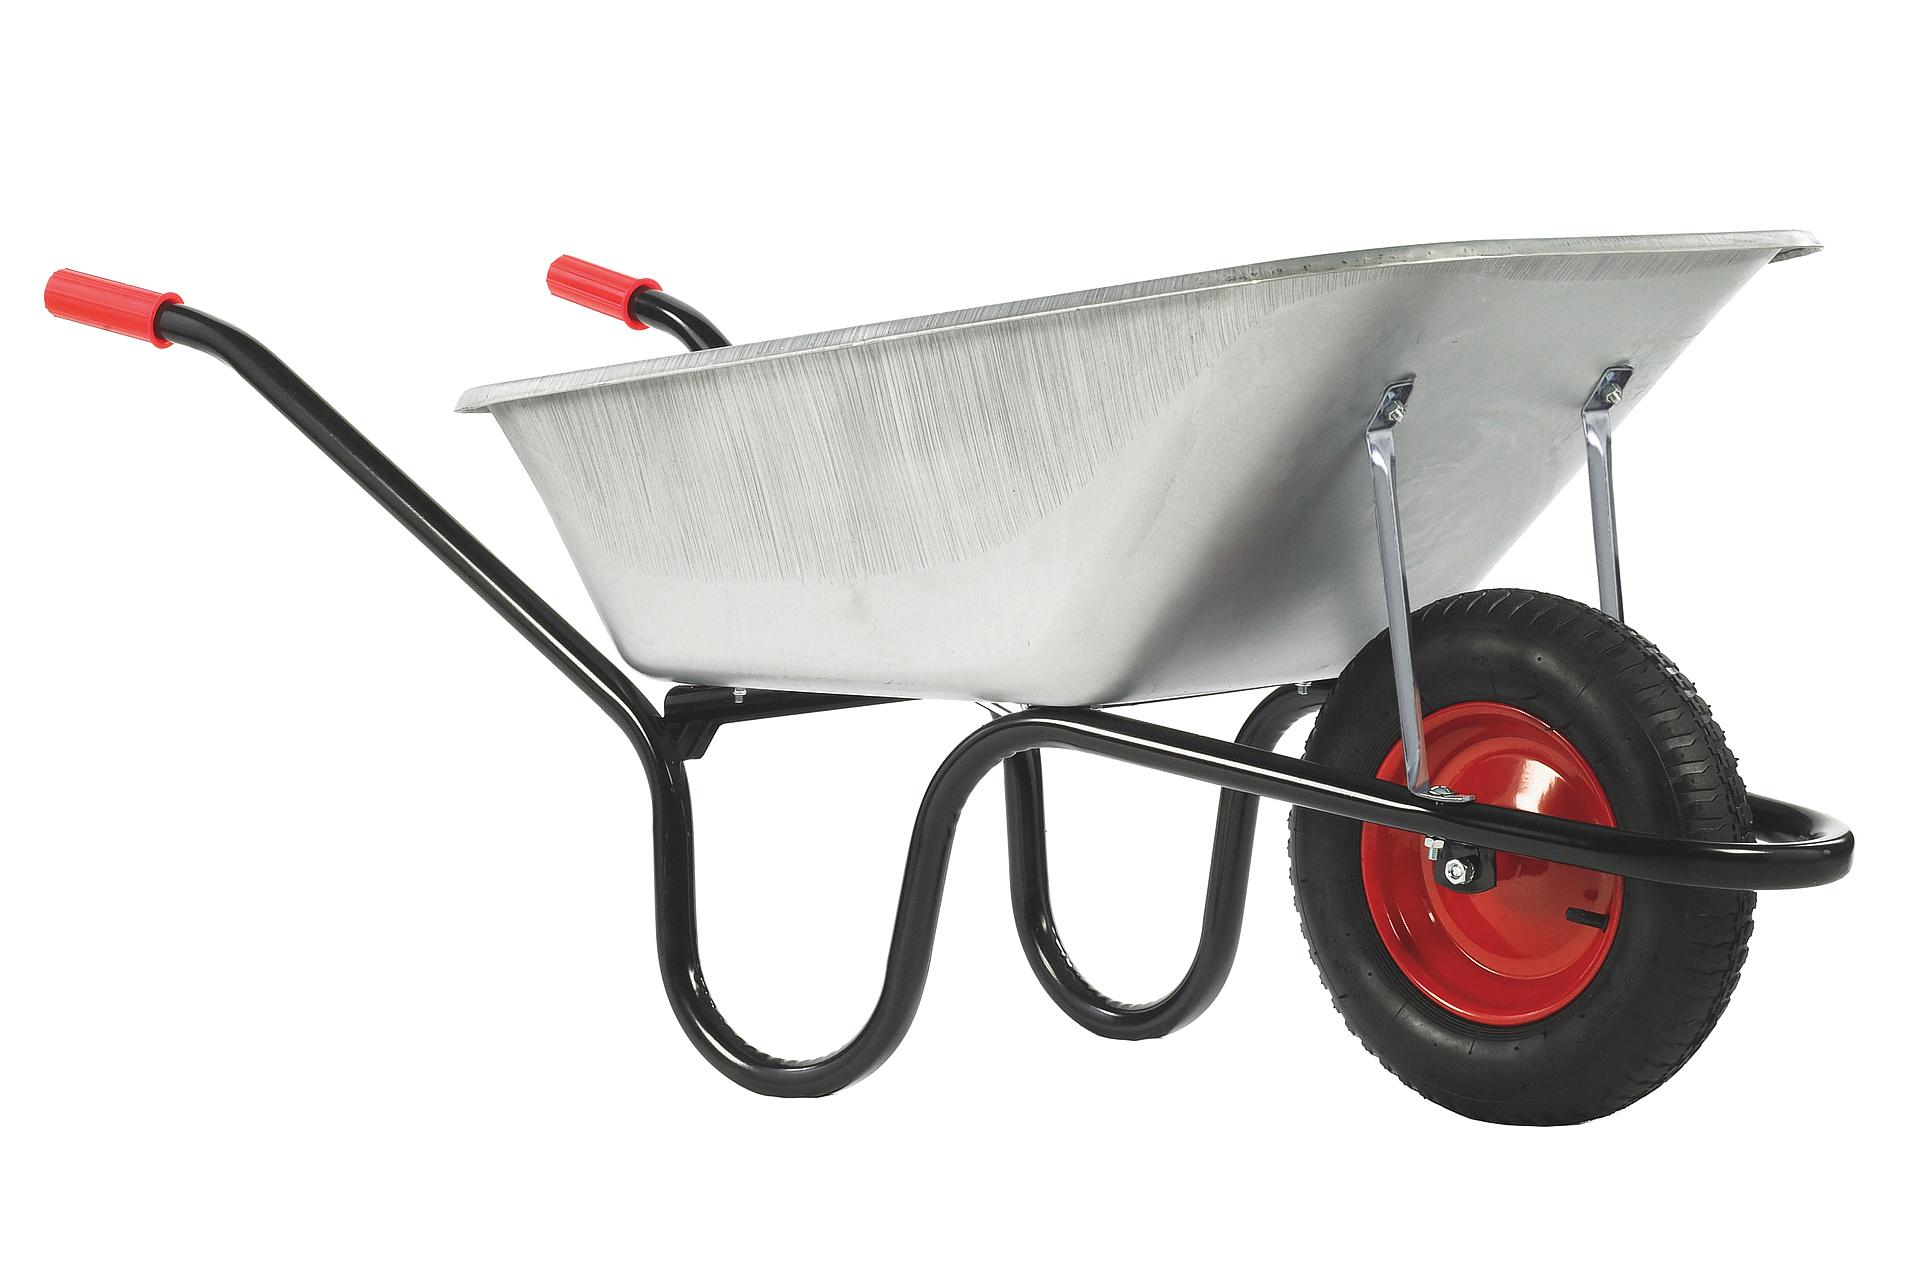 Haemmerlin Camden Classic Galvanised 85L Solid Wheel Wheelbarrow #2